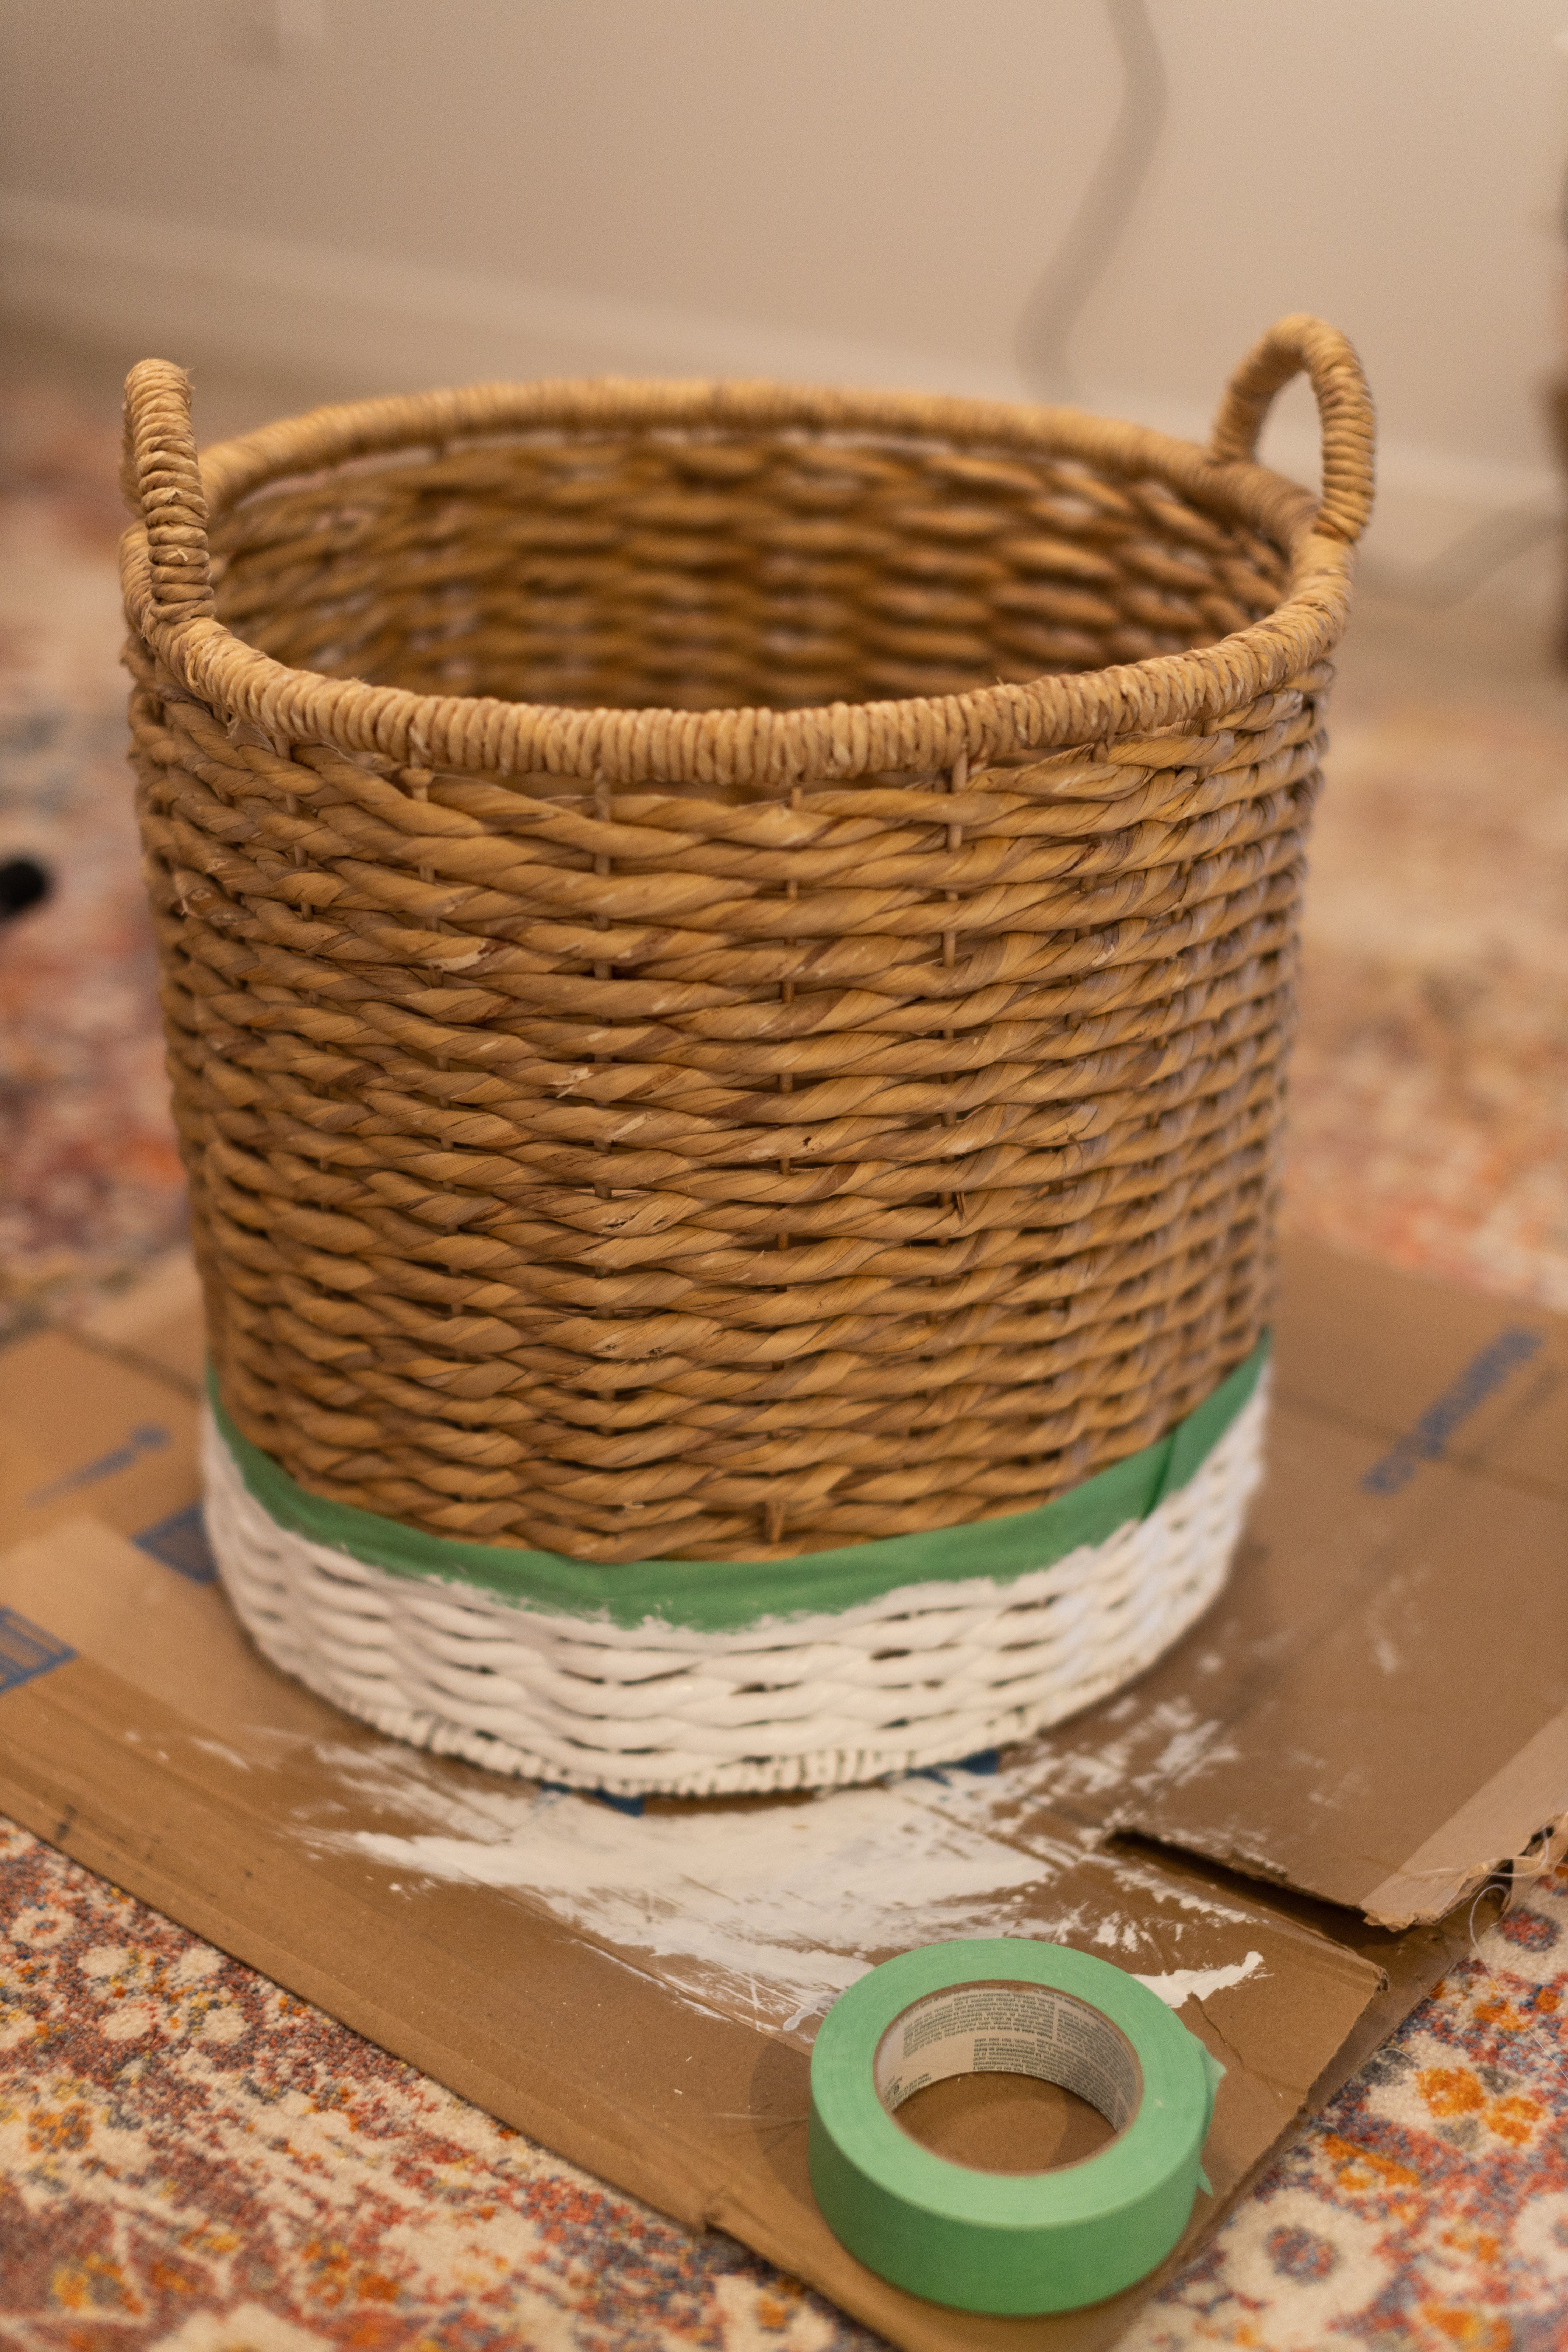 McGee and CO Inspired Dipped Basket. I tried my hand at a DIY Dipped basket and it turned out beautifully and I saved over 150 Dollars!